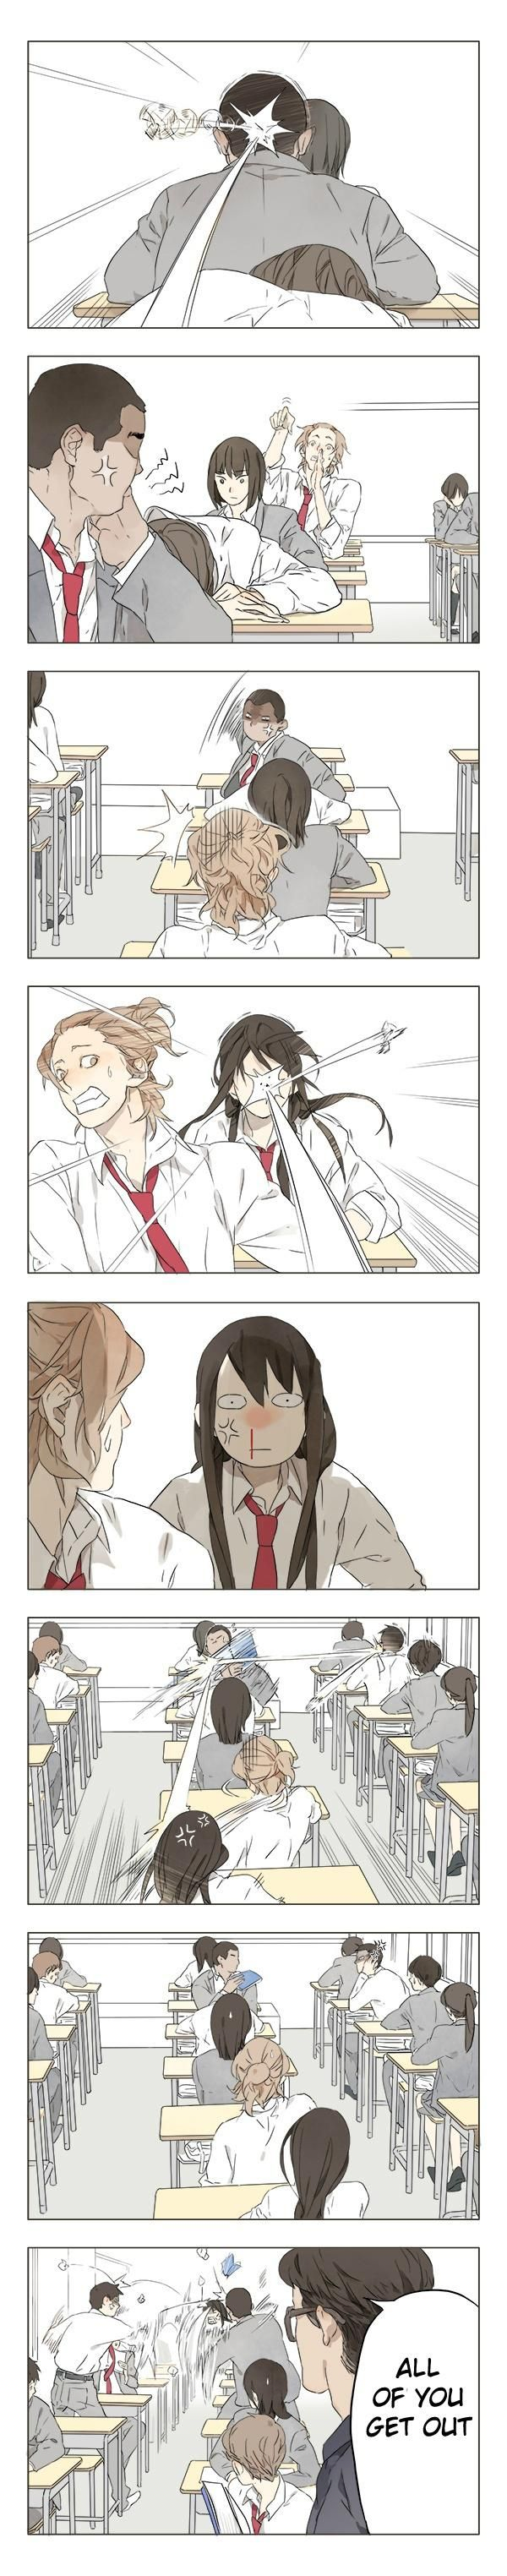 Tamen Di Gushi Chapter 1 Page 6 and then they started playing sea weed outside the class